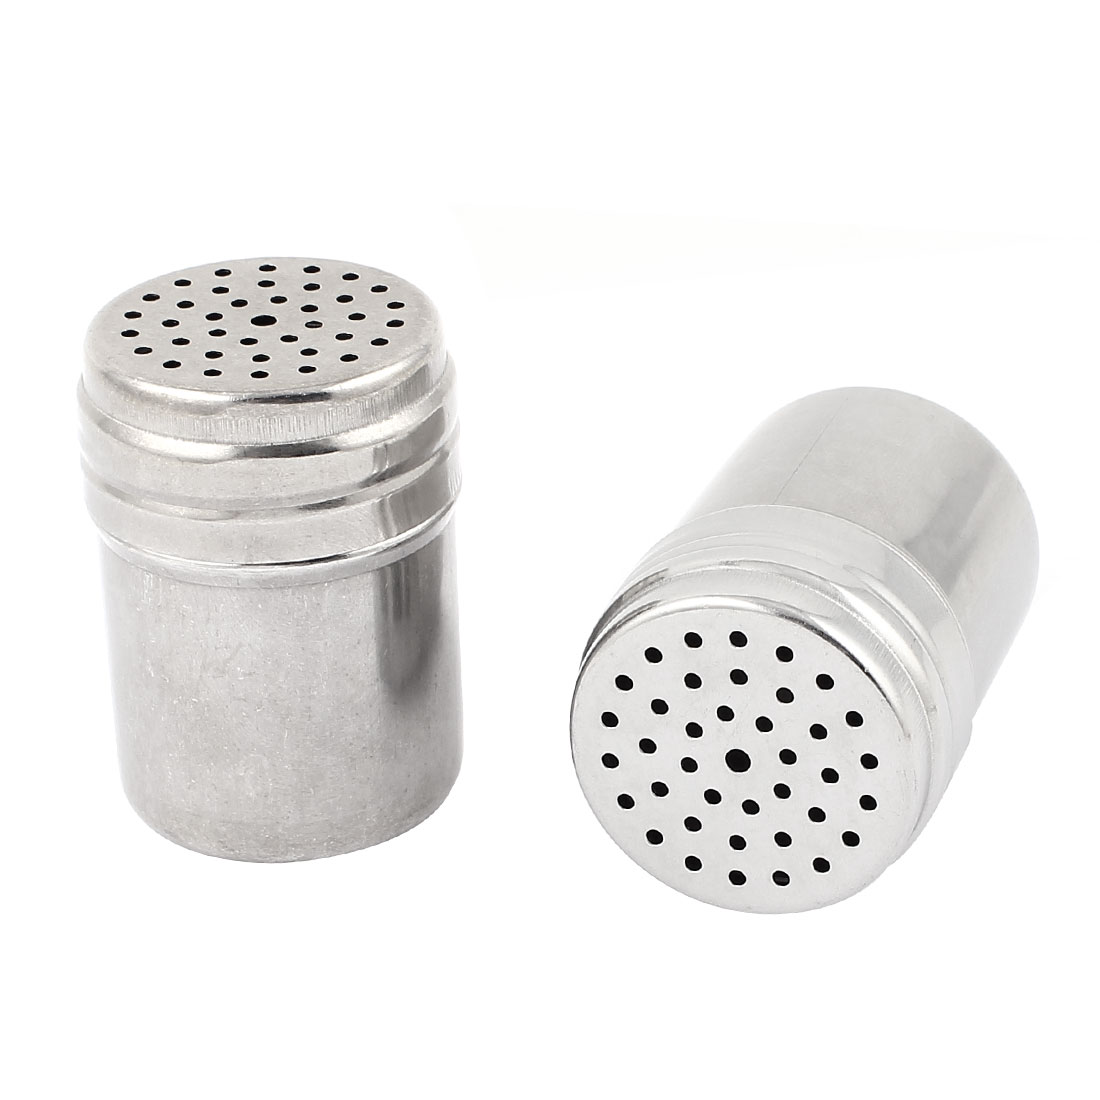 "Stainless Steel Cylindrical Toothpick Holder Container Dispenser 3"" x 2"" 2pcs"